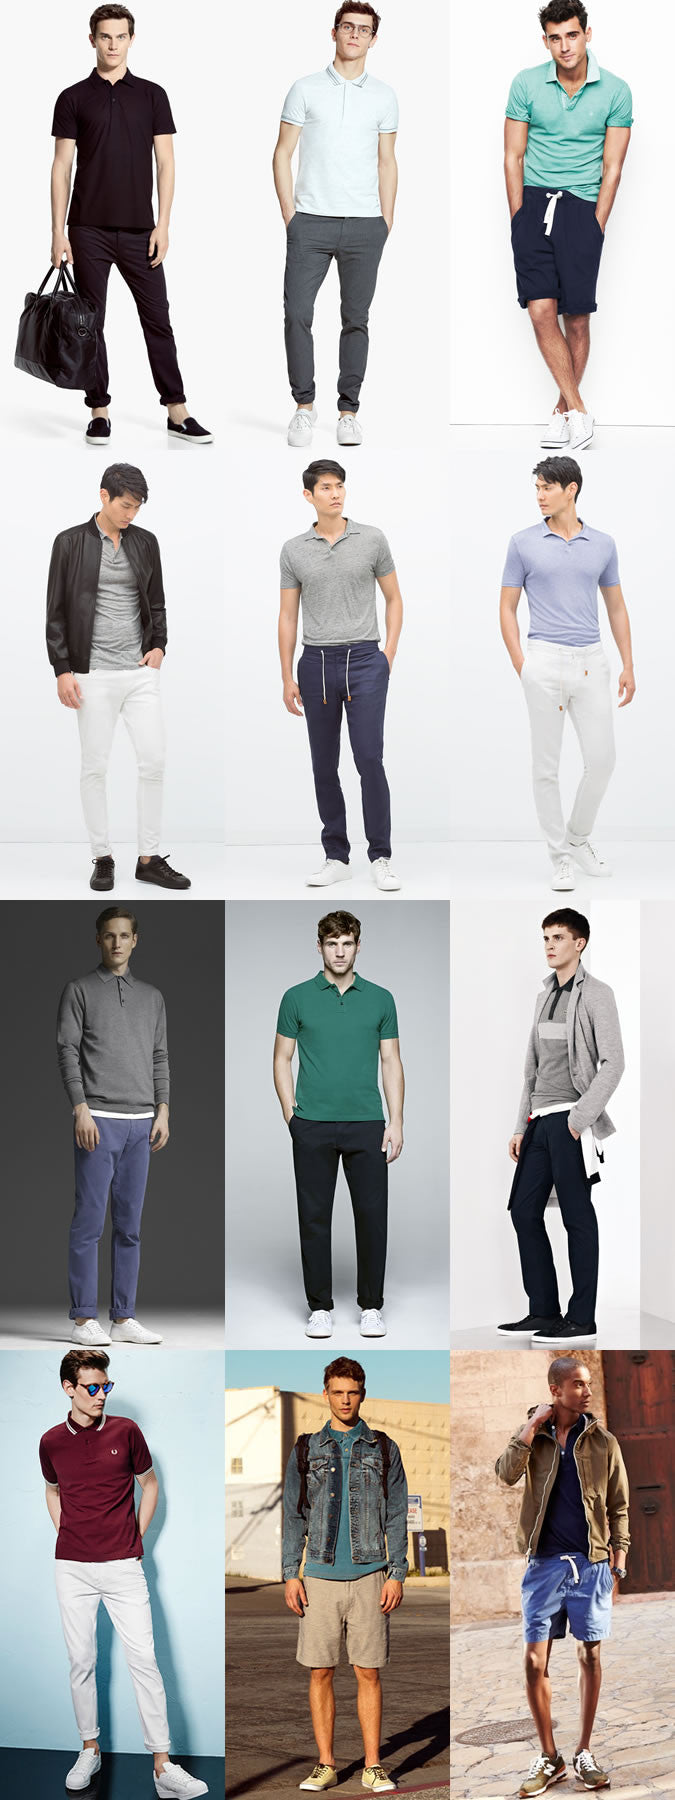 sporty looks in polo shirts for men